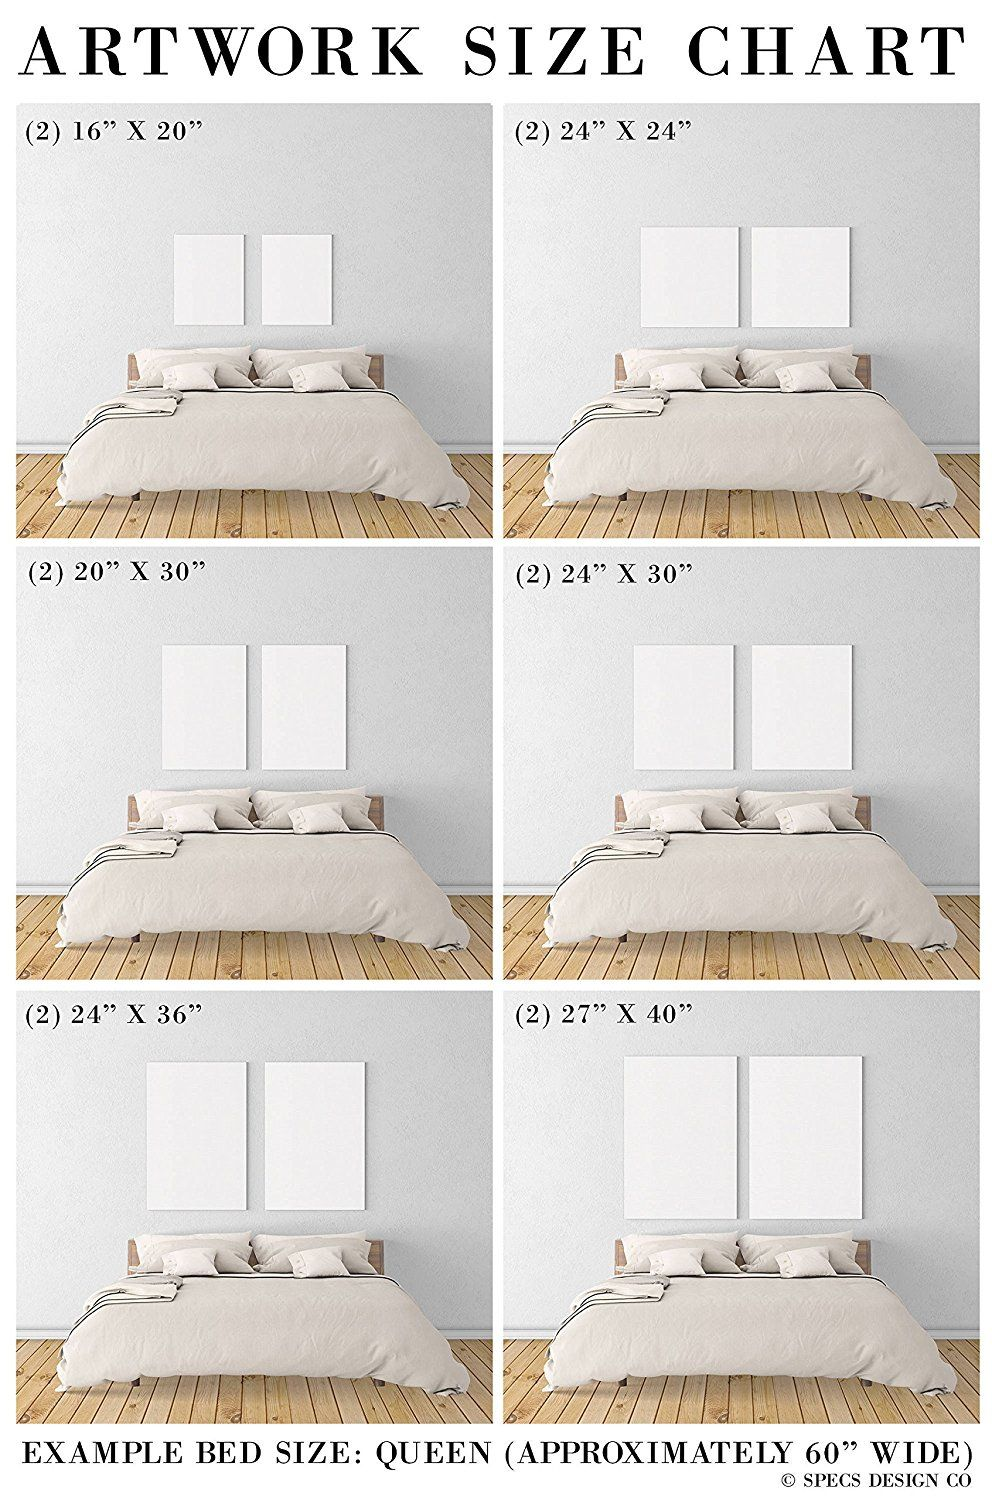 Image result for bedrooms large i love you art above bed